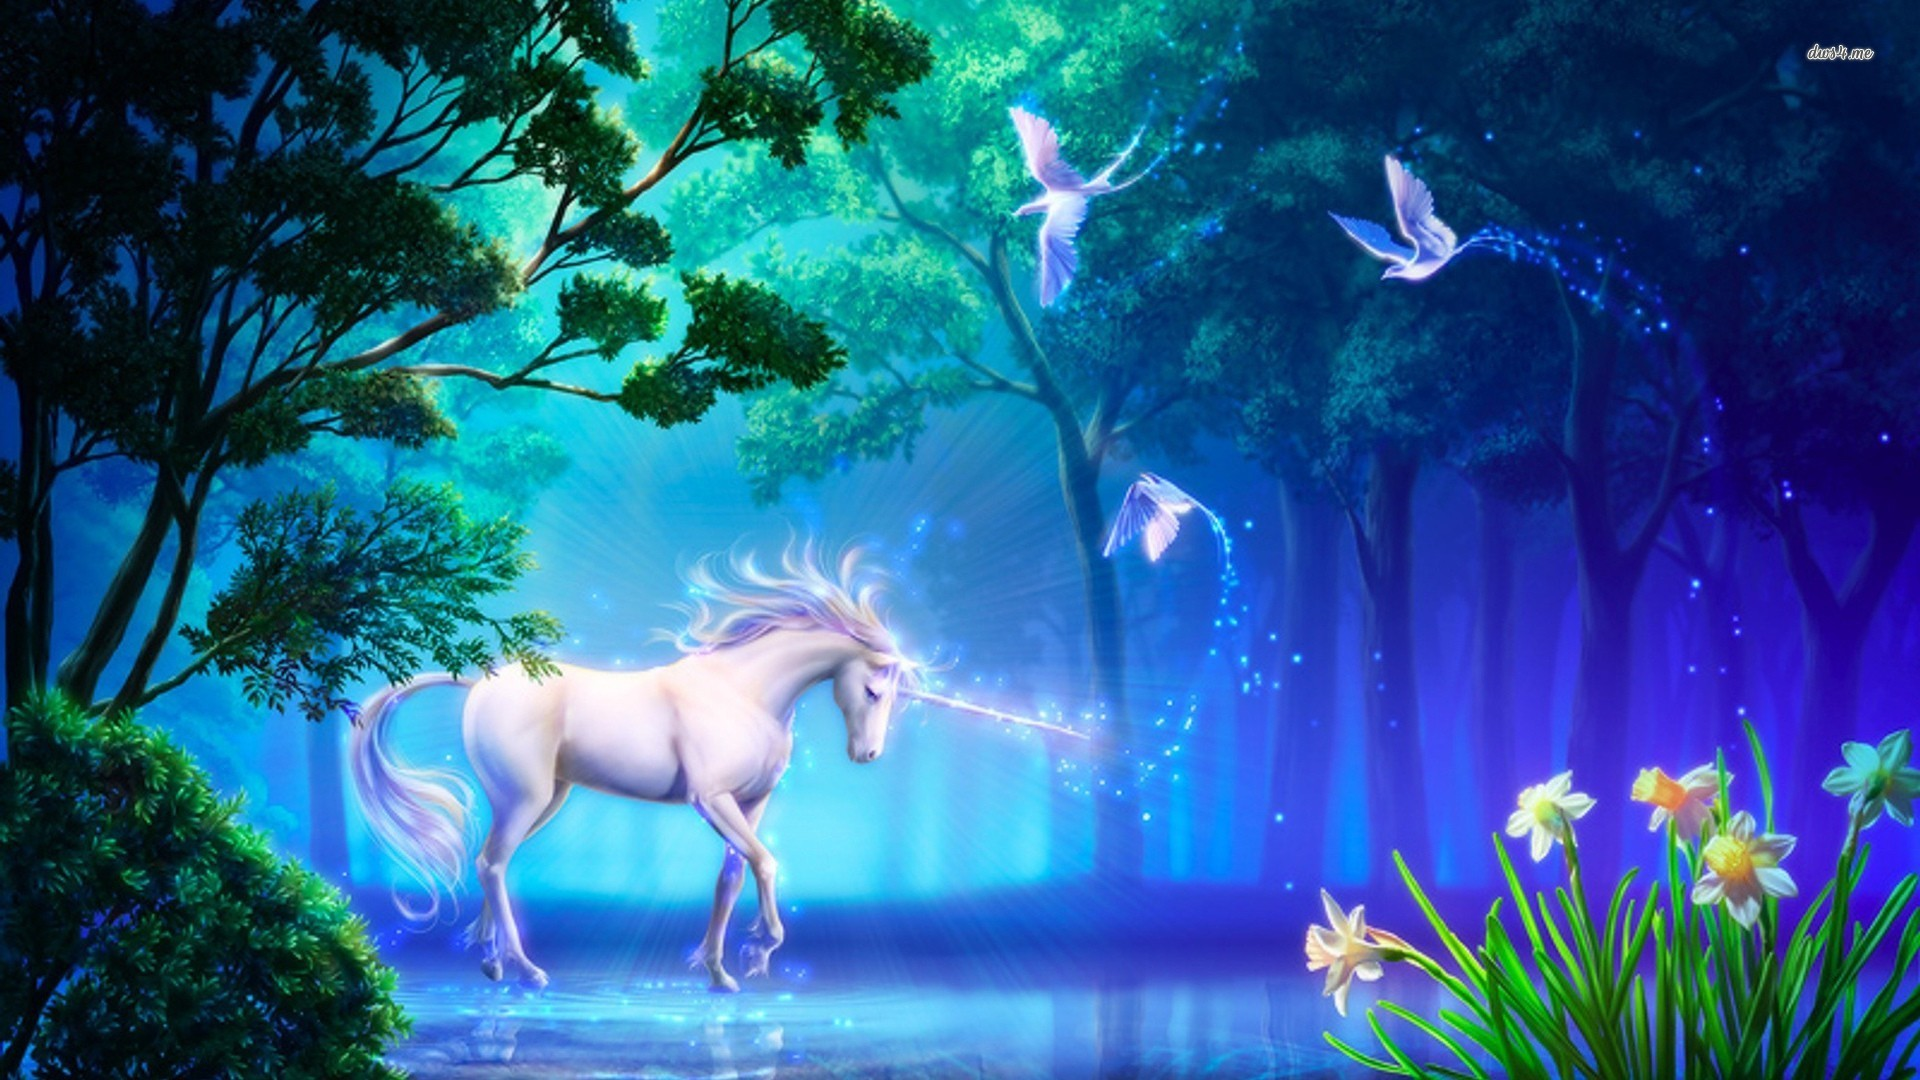 Wallpaper Hd Unicorn